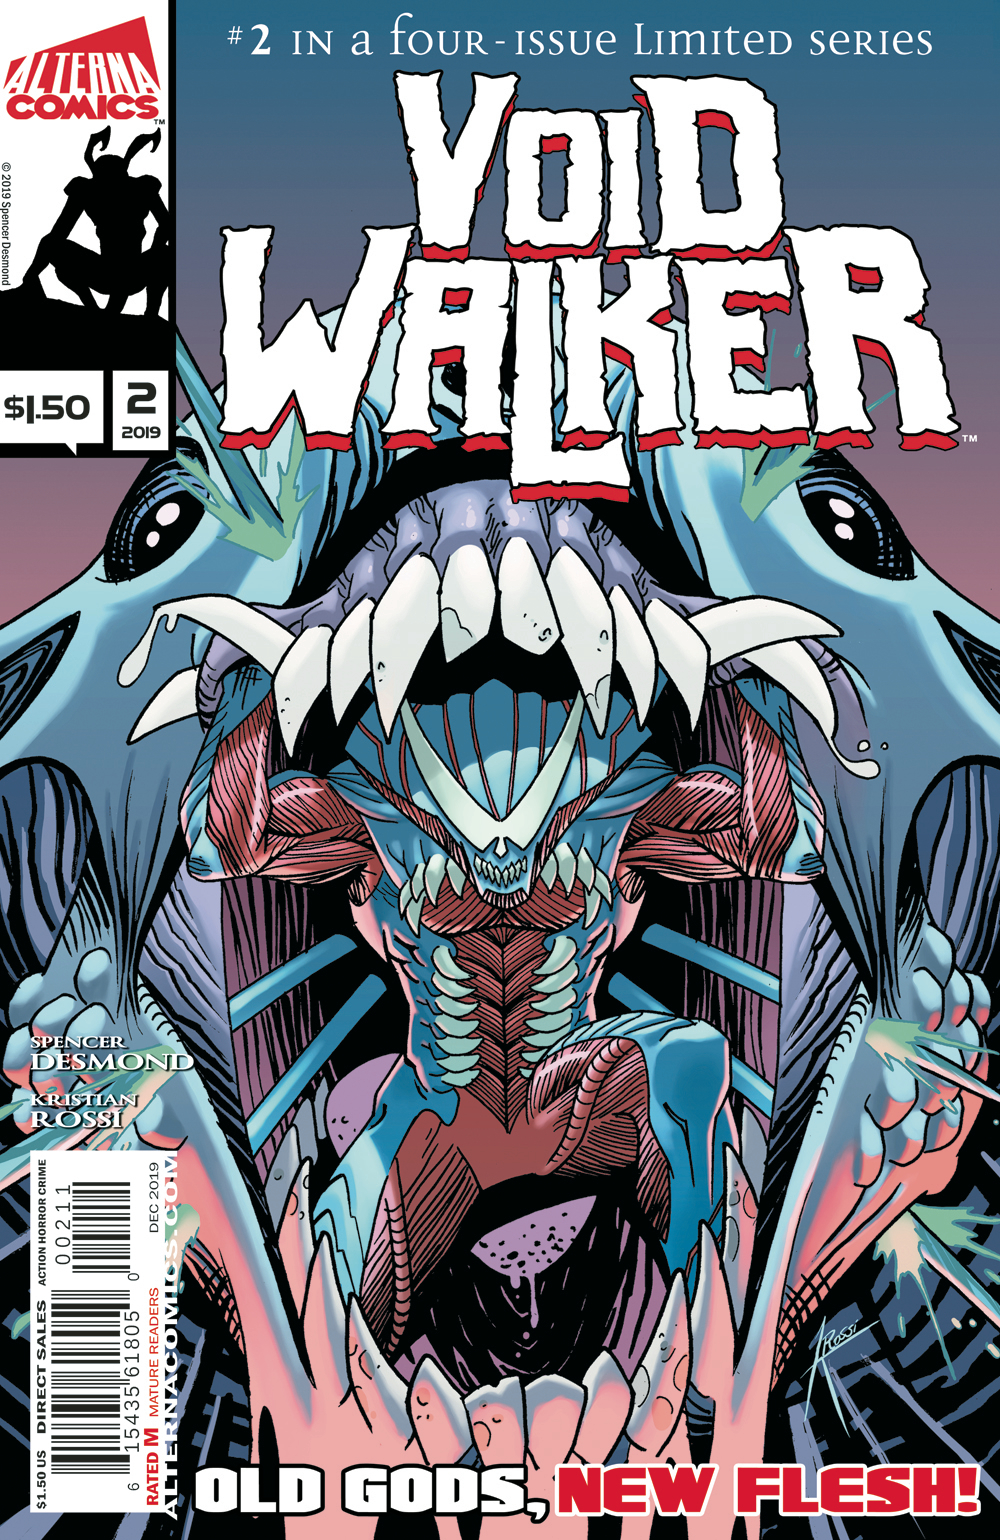 VOID WALKER #2 (OF 4) (MR)